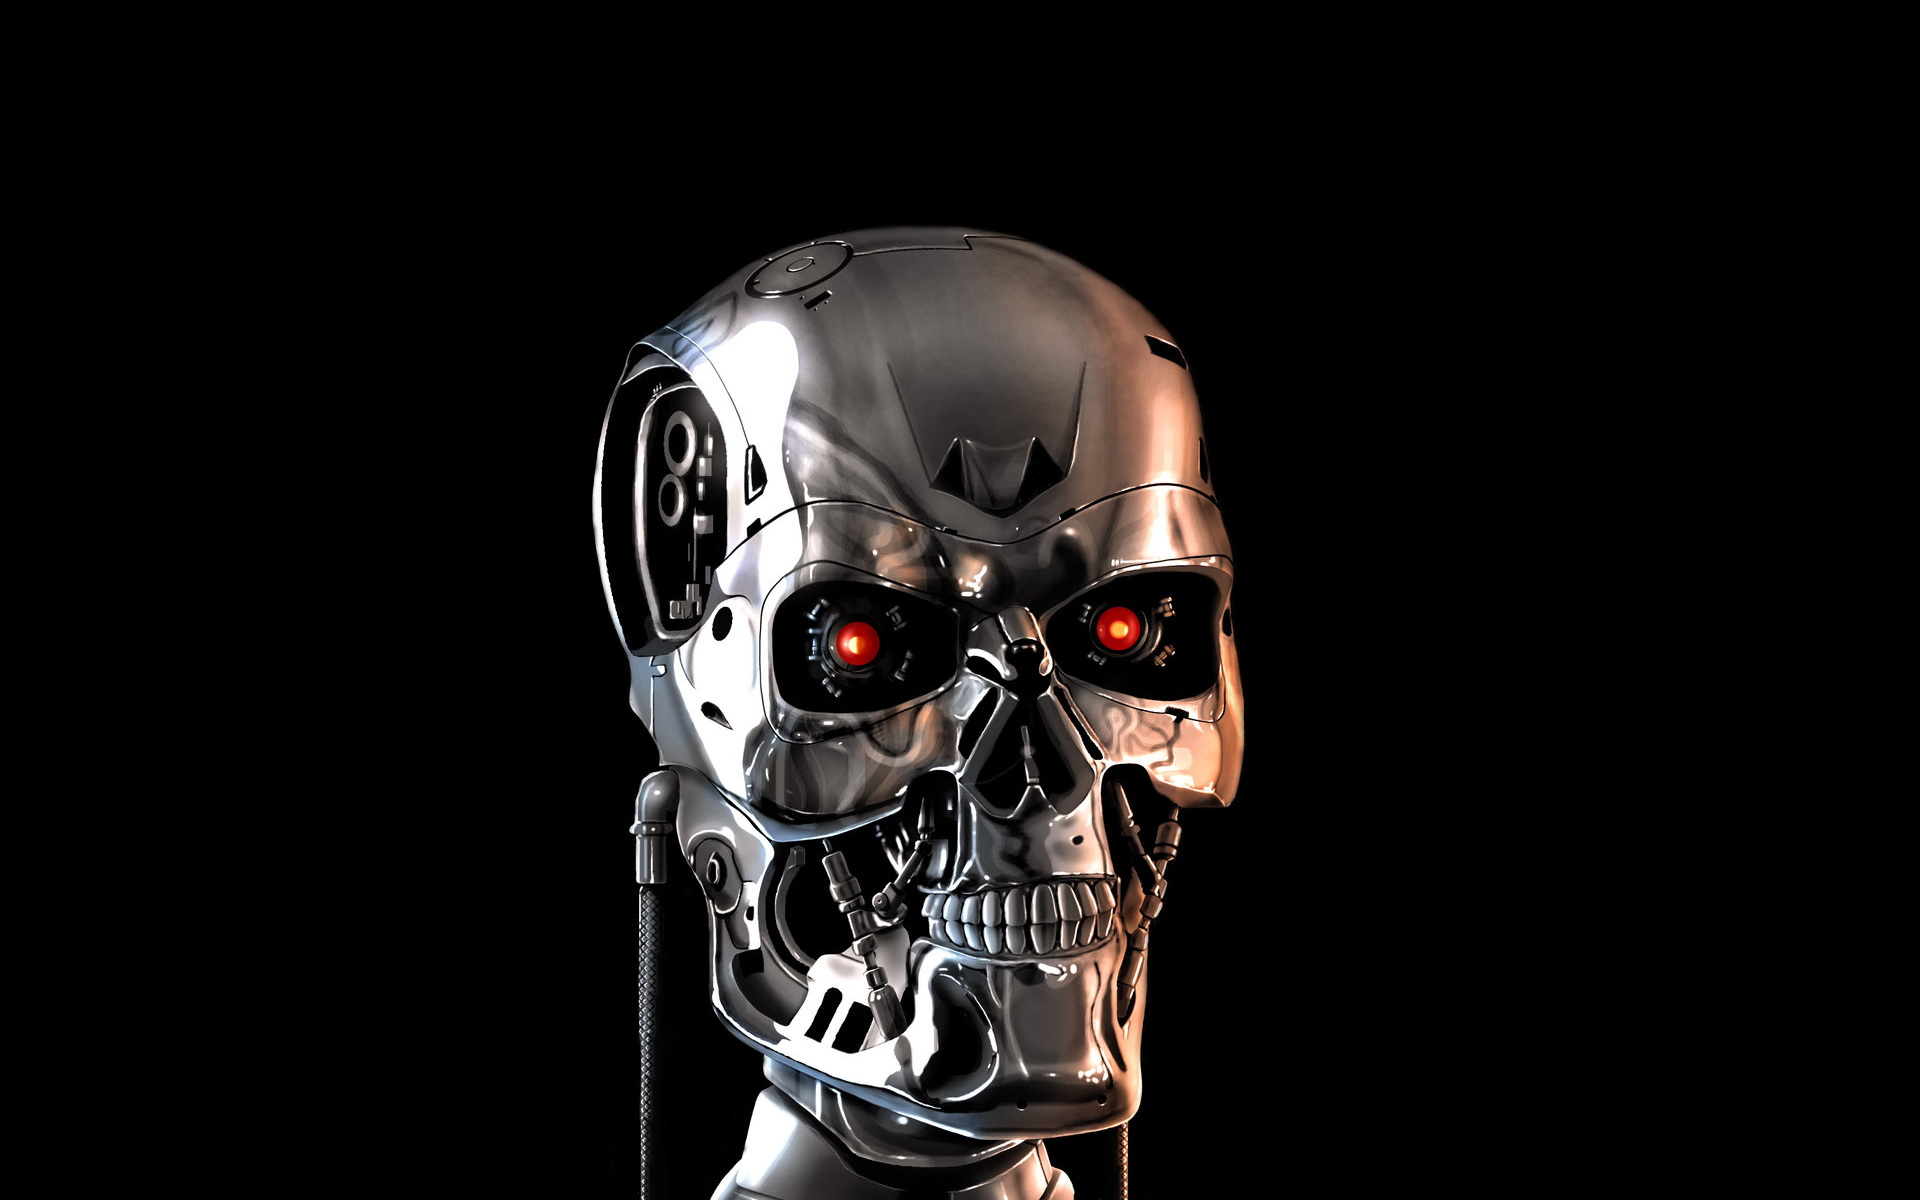 Rog Animated Wallpaper The Terminator Hd Wallpapers Amp Images All Hd Wallpapers